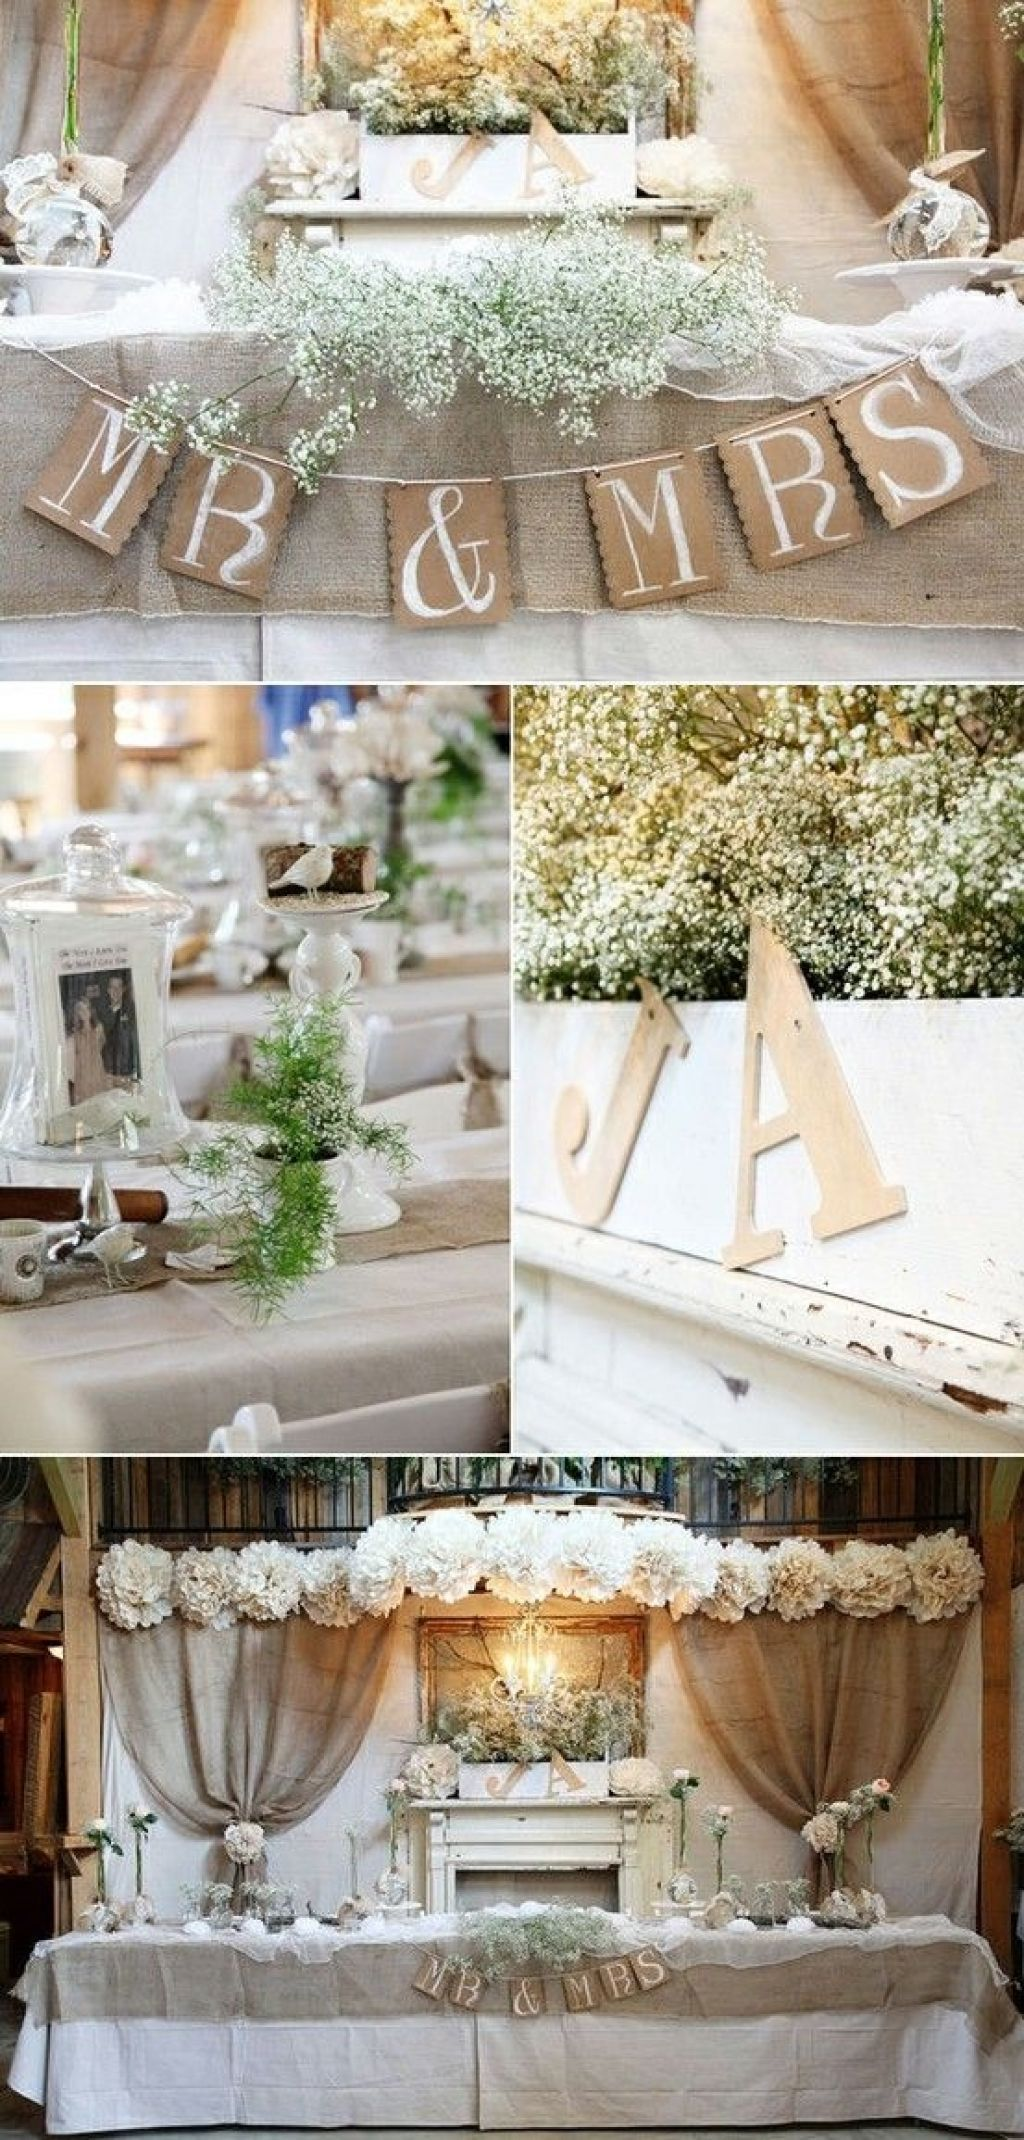 Burlap wedding decorations burlap table runners to view burlap wedding decorations burlap table runners to view further for this article junglespirit Image collections